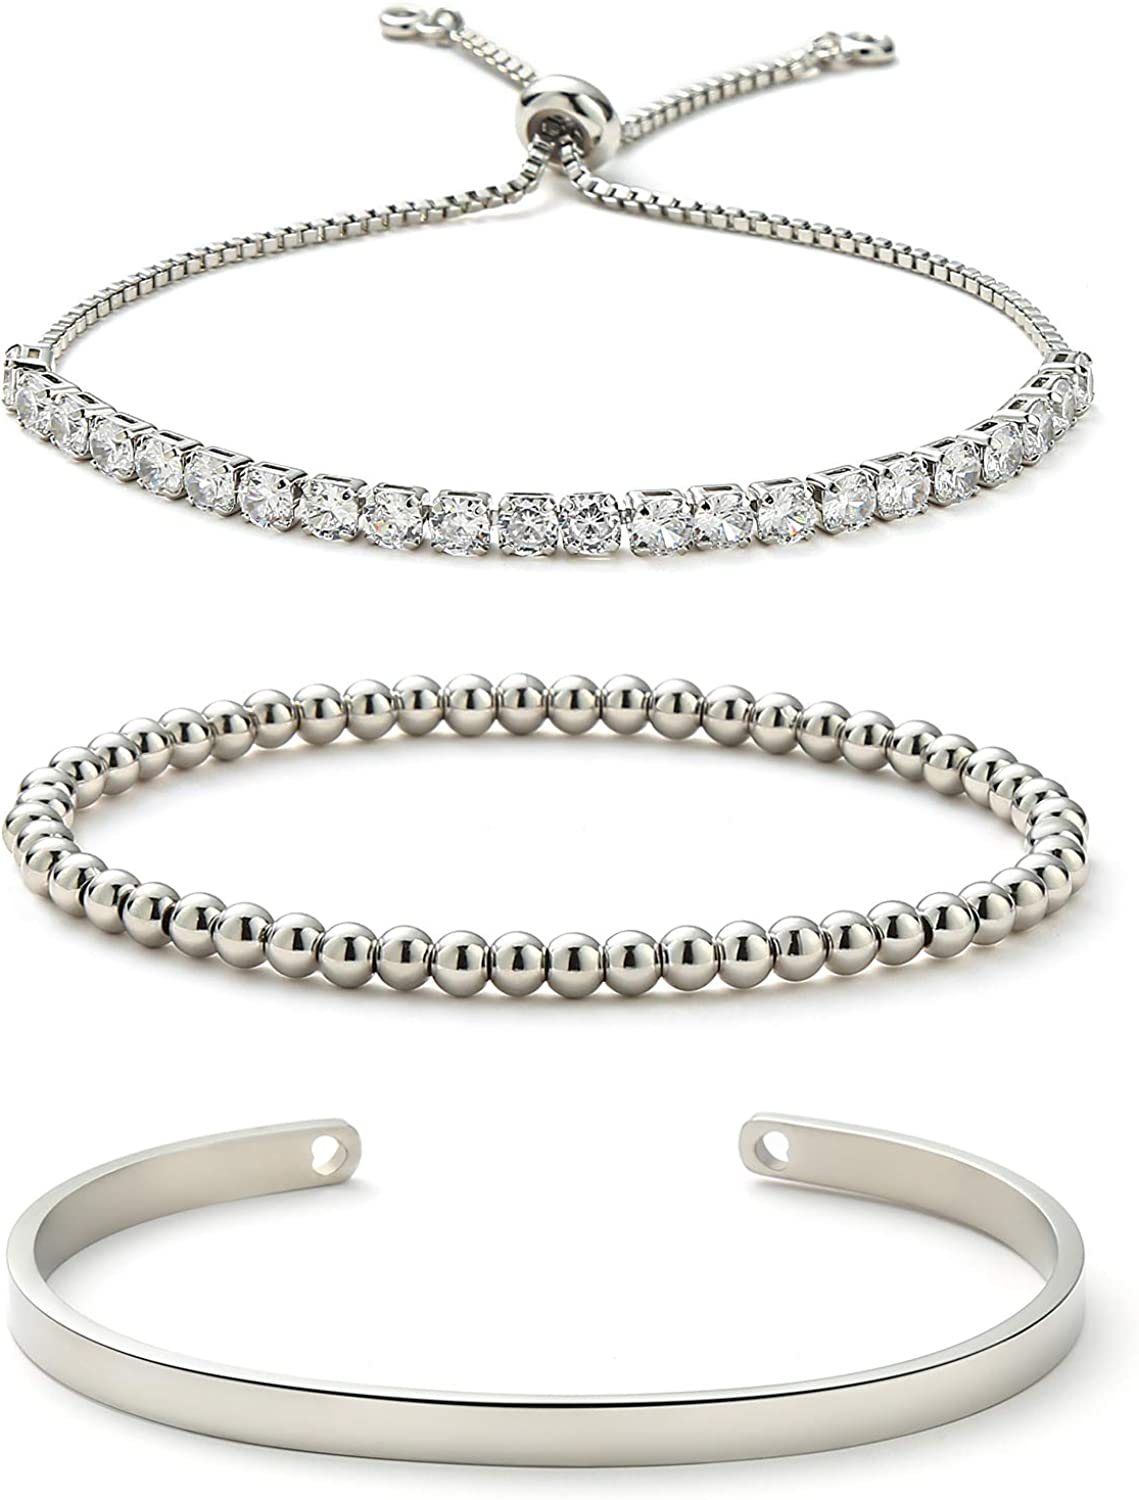 Starain OFFicial site High quality new 18K Gold Plated Tennis Bracelets for Women Z Cubic White